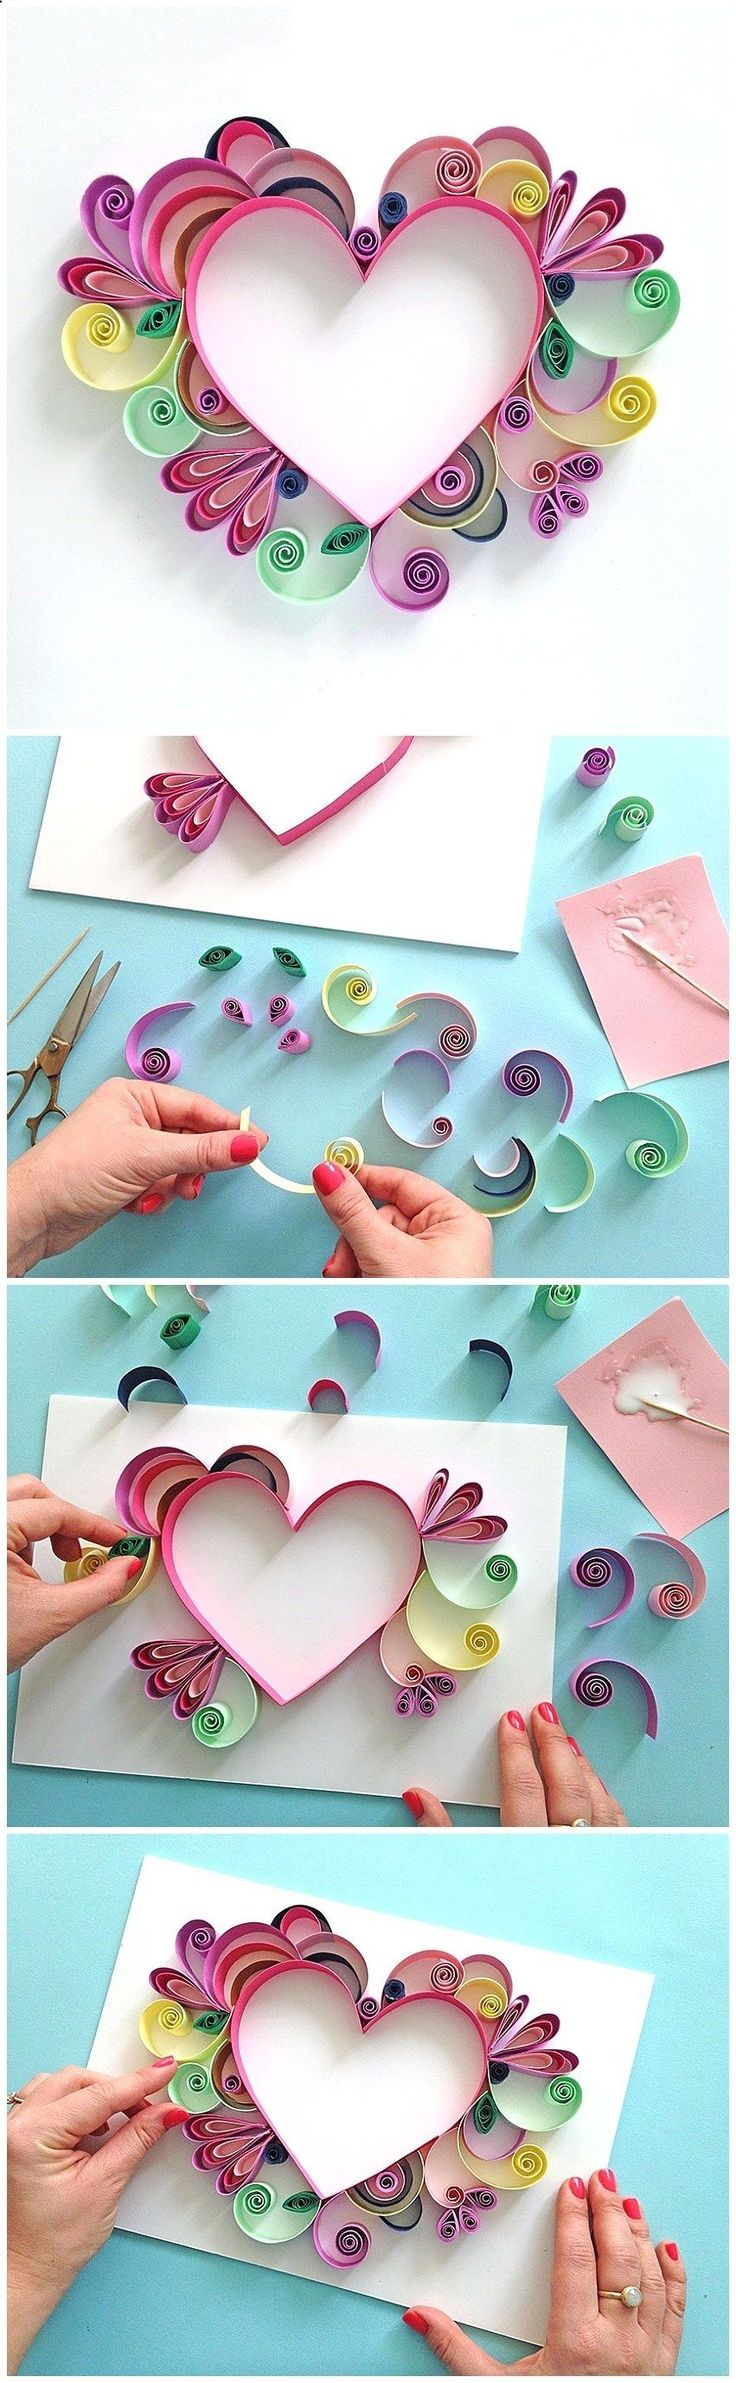 best good idea images on pinterest diy home and crafts